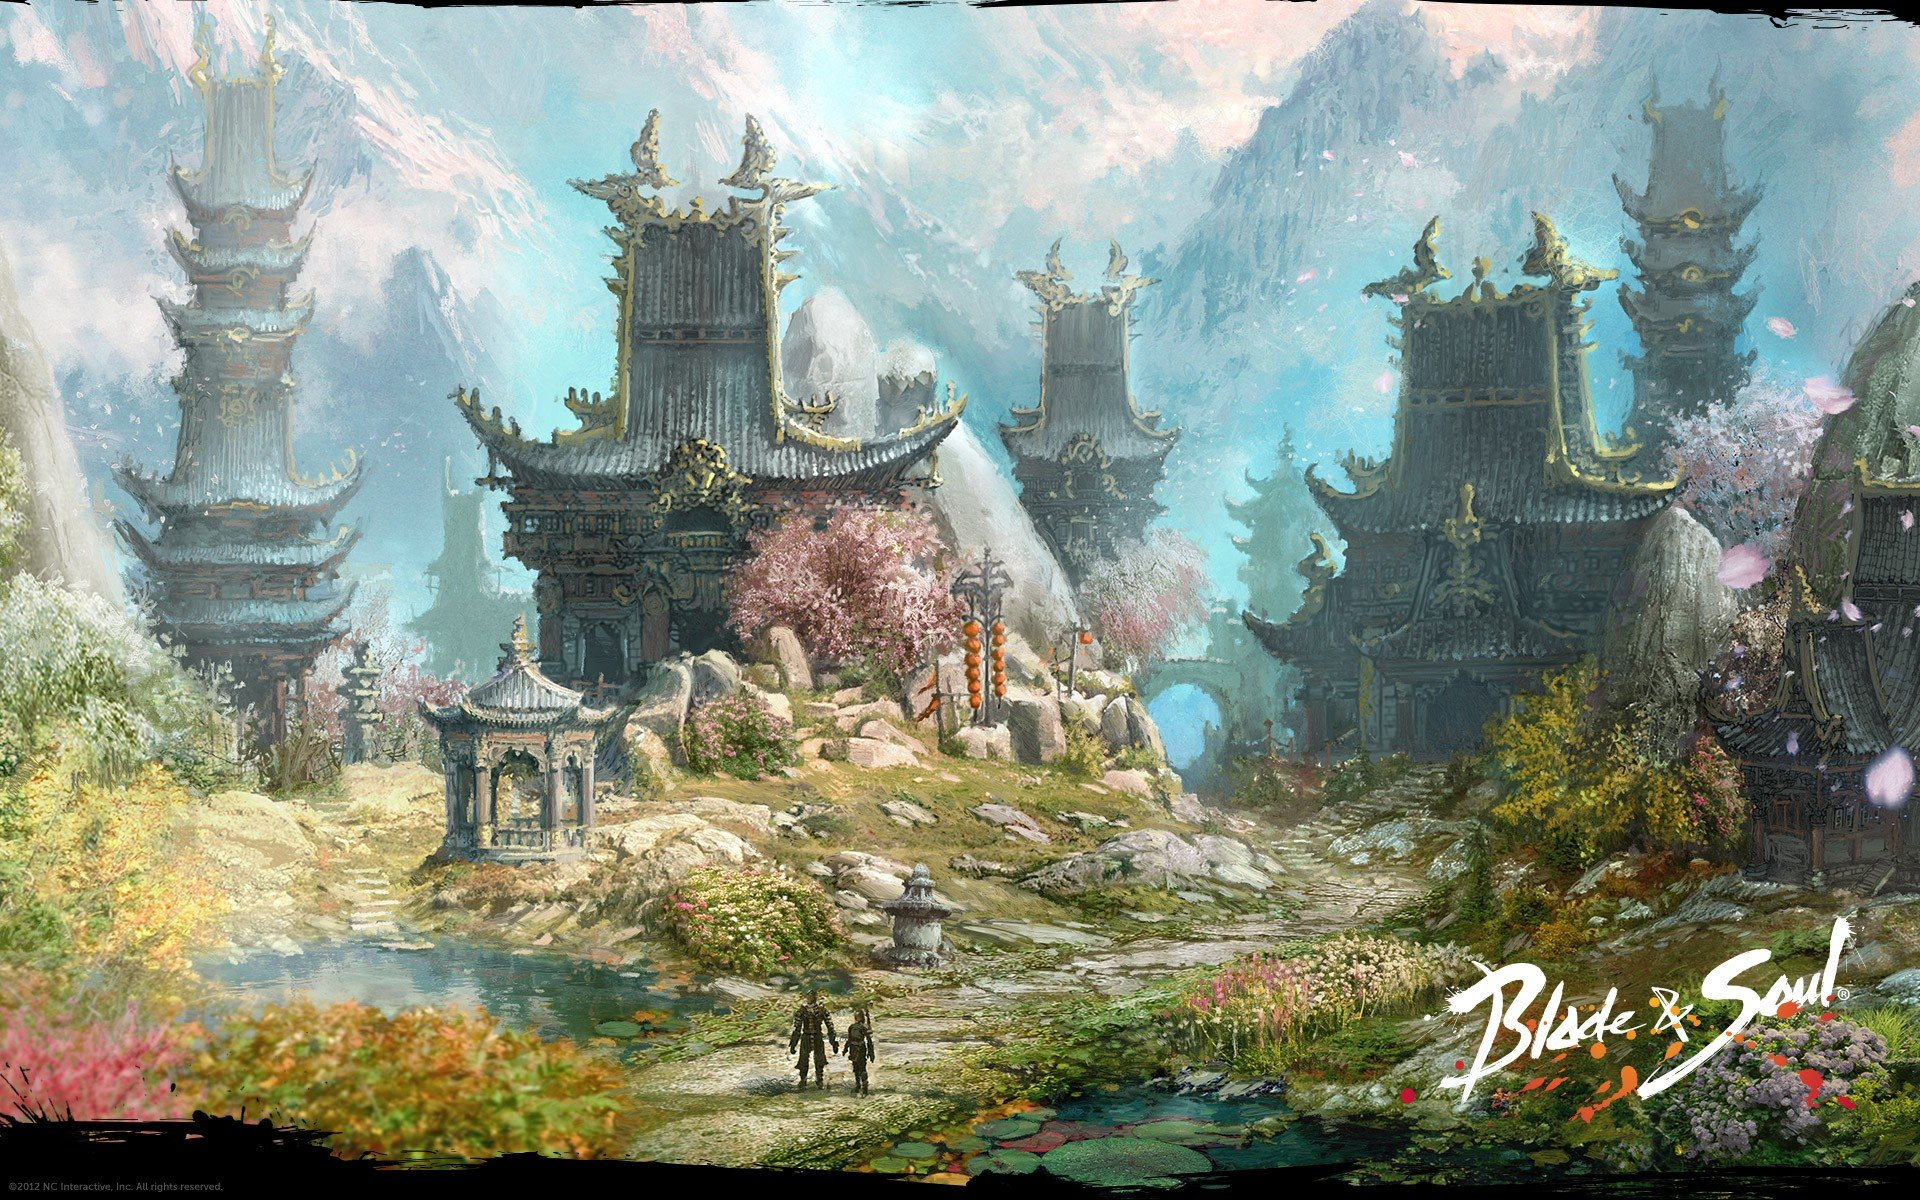 blade & soul anime wallpaper